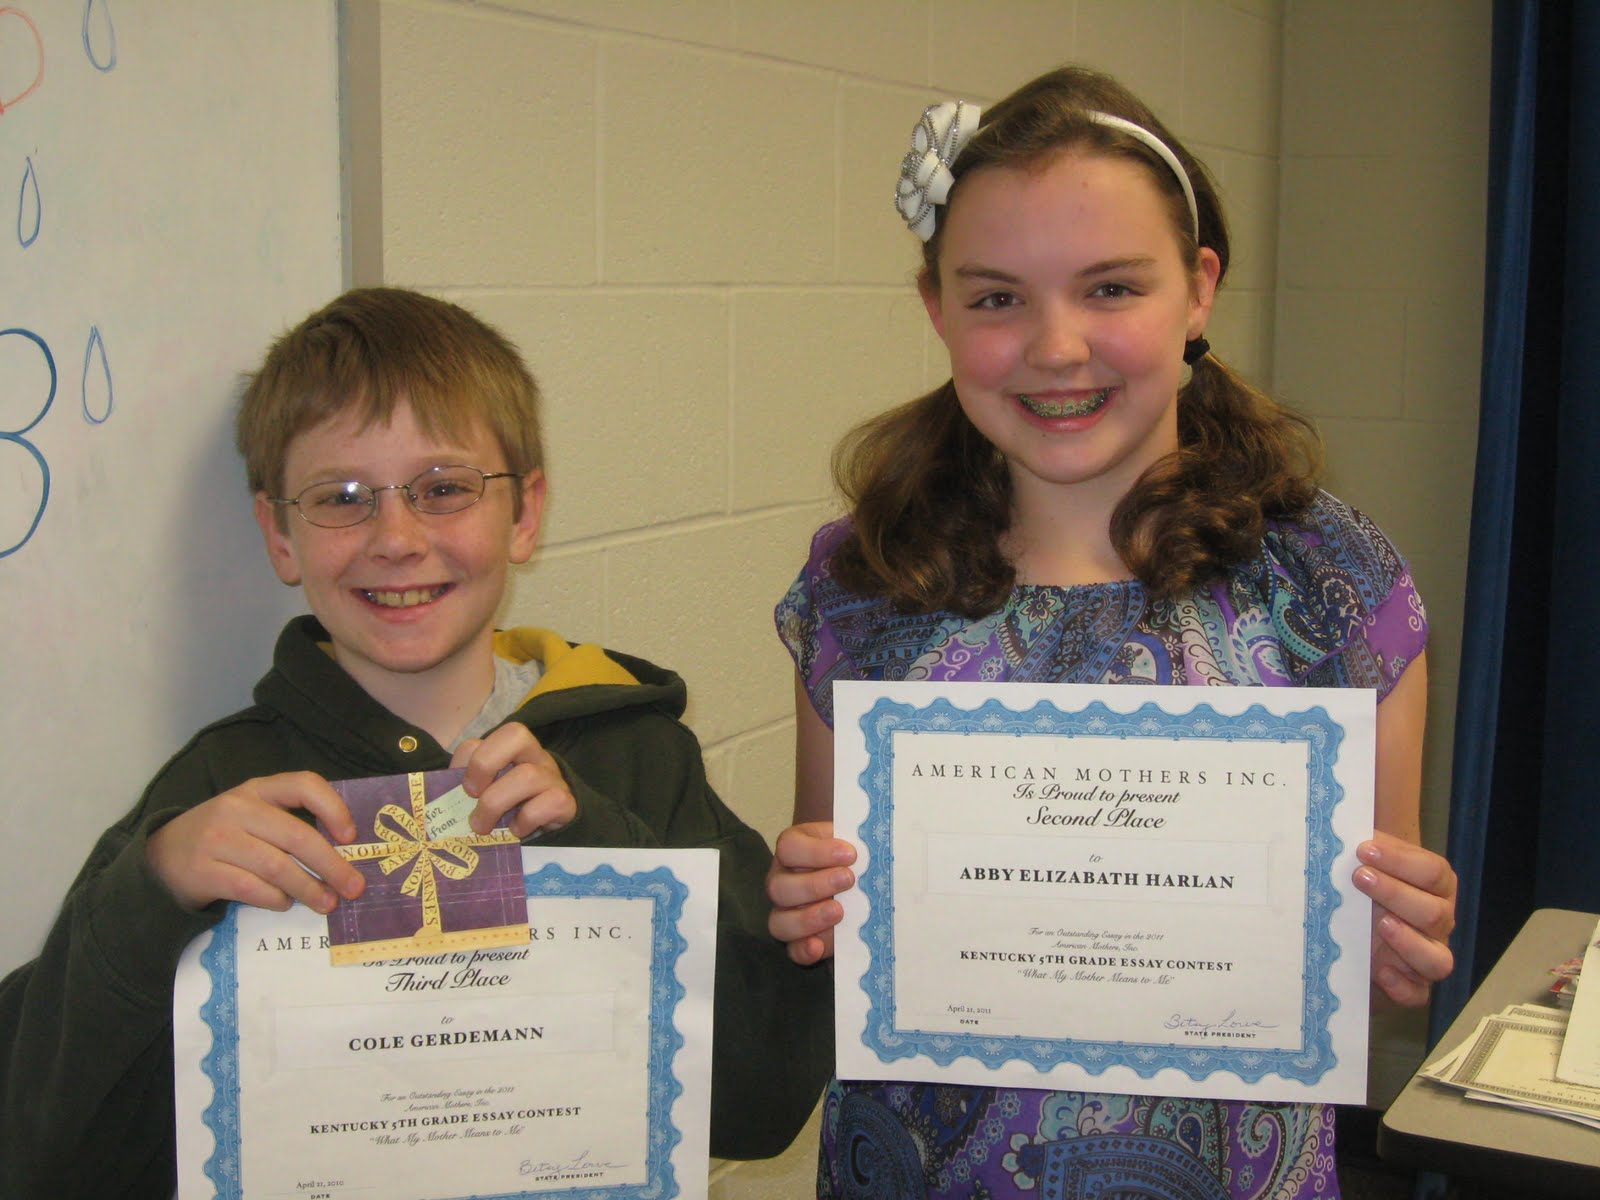 ... the essays, and the winners were announced at the awards ceremony